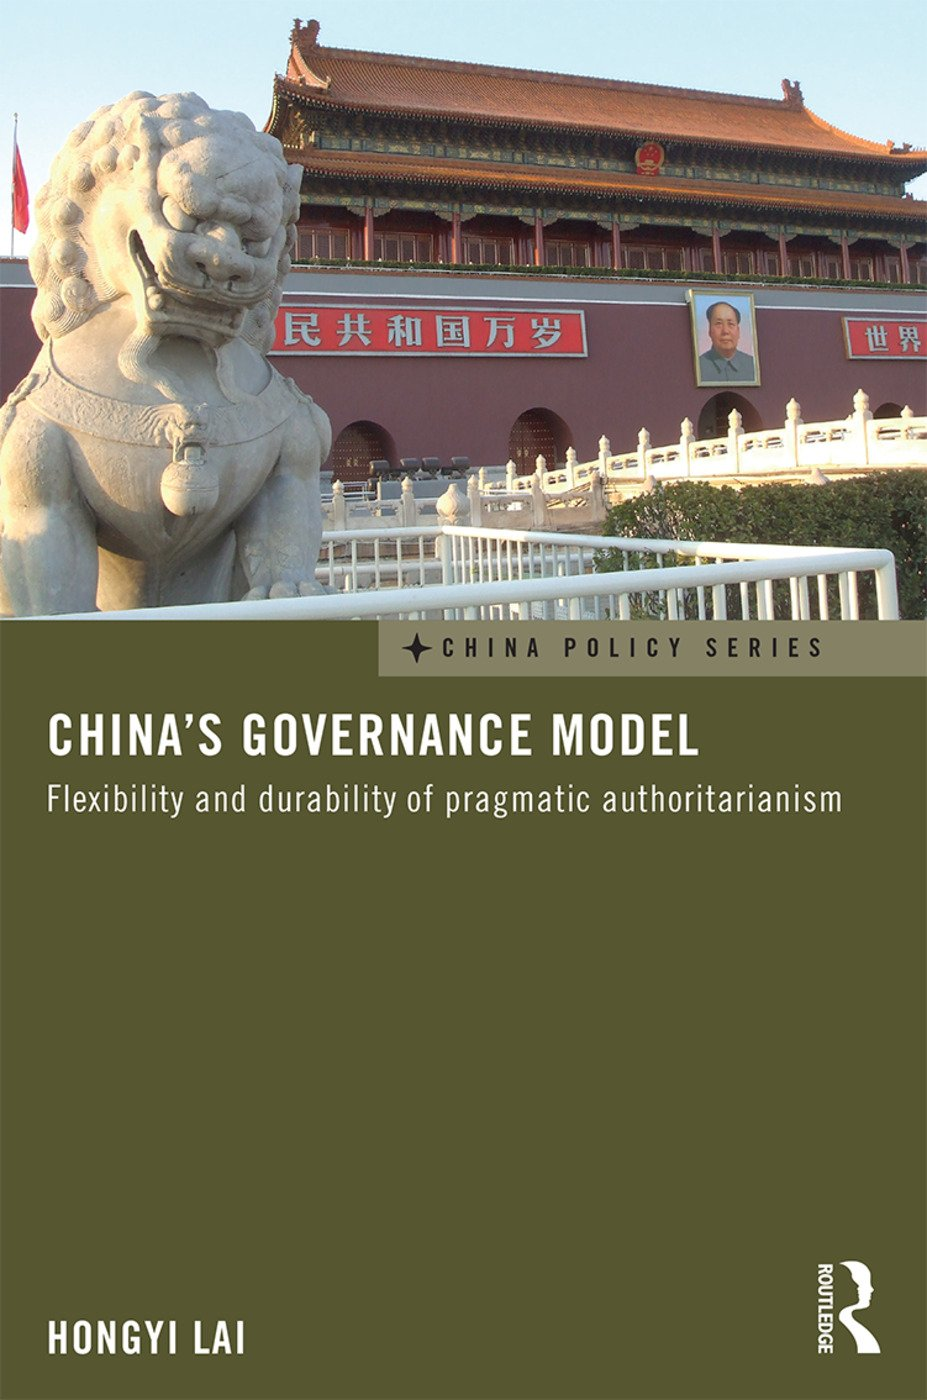 China's Governance Model: Flexibility and Durability of Pragmatic Authoritarianism book cover